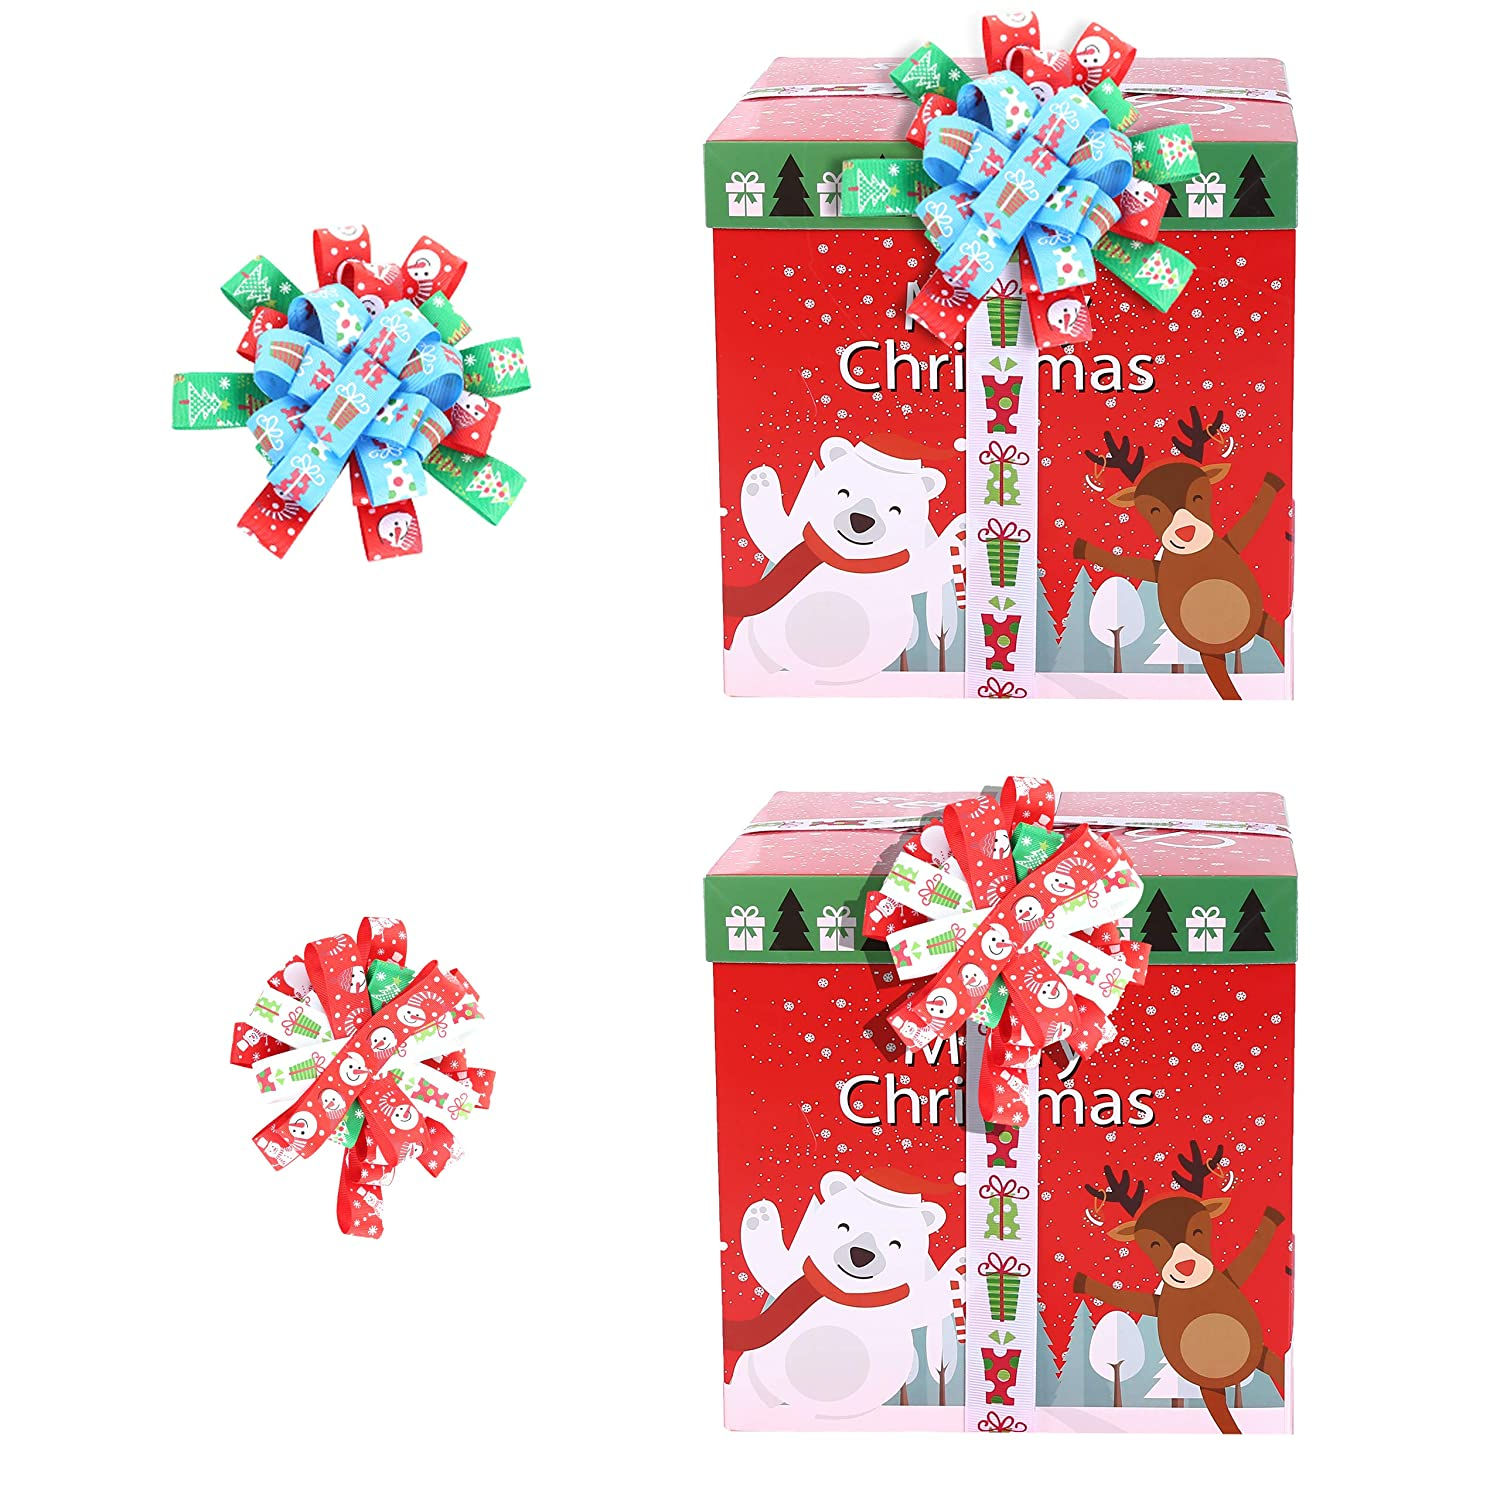 Baby Shower Sewing Hair Bow Clips Christmas Ribbon; 27 Yards 1 Grosgrain Satin Fabric Xmas Ribbons for Crafts Decoration Holiday Box Gift Wrapping 9 Patterns x 3Yds Packed in Roll Wedding